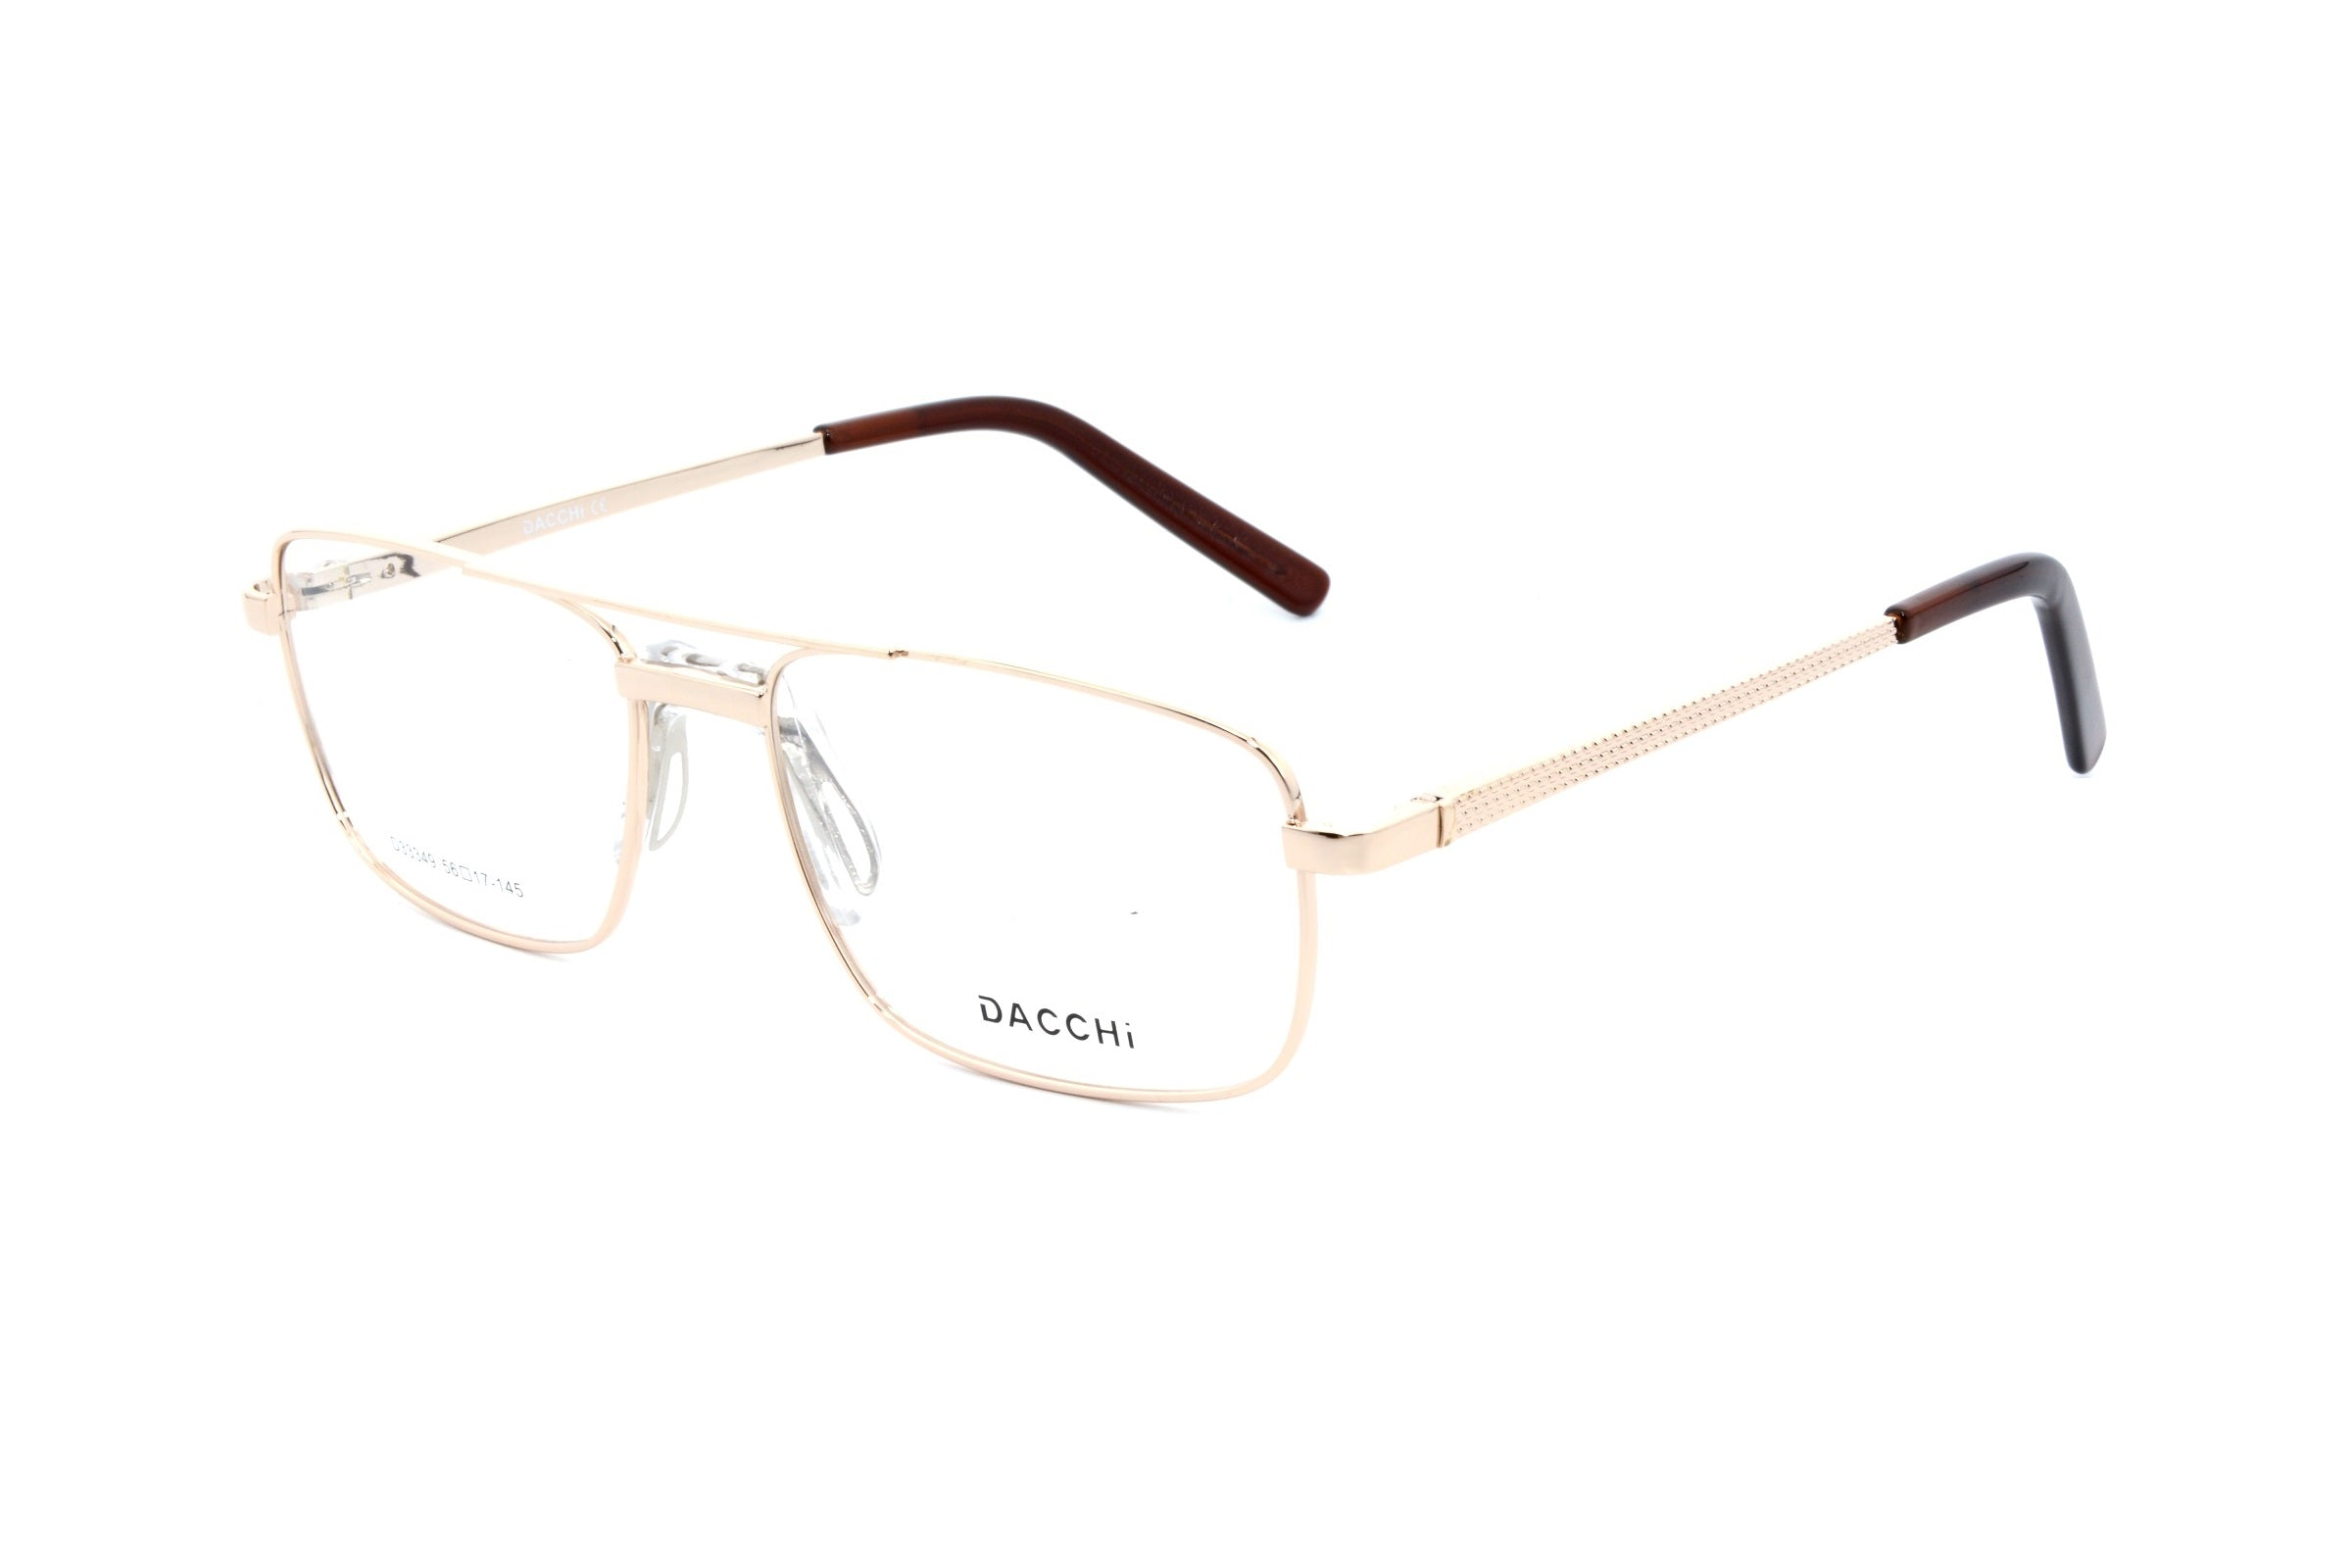 Dacchi eyewear 33349, C2 - Optics Trading